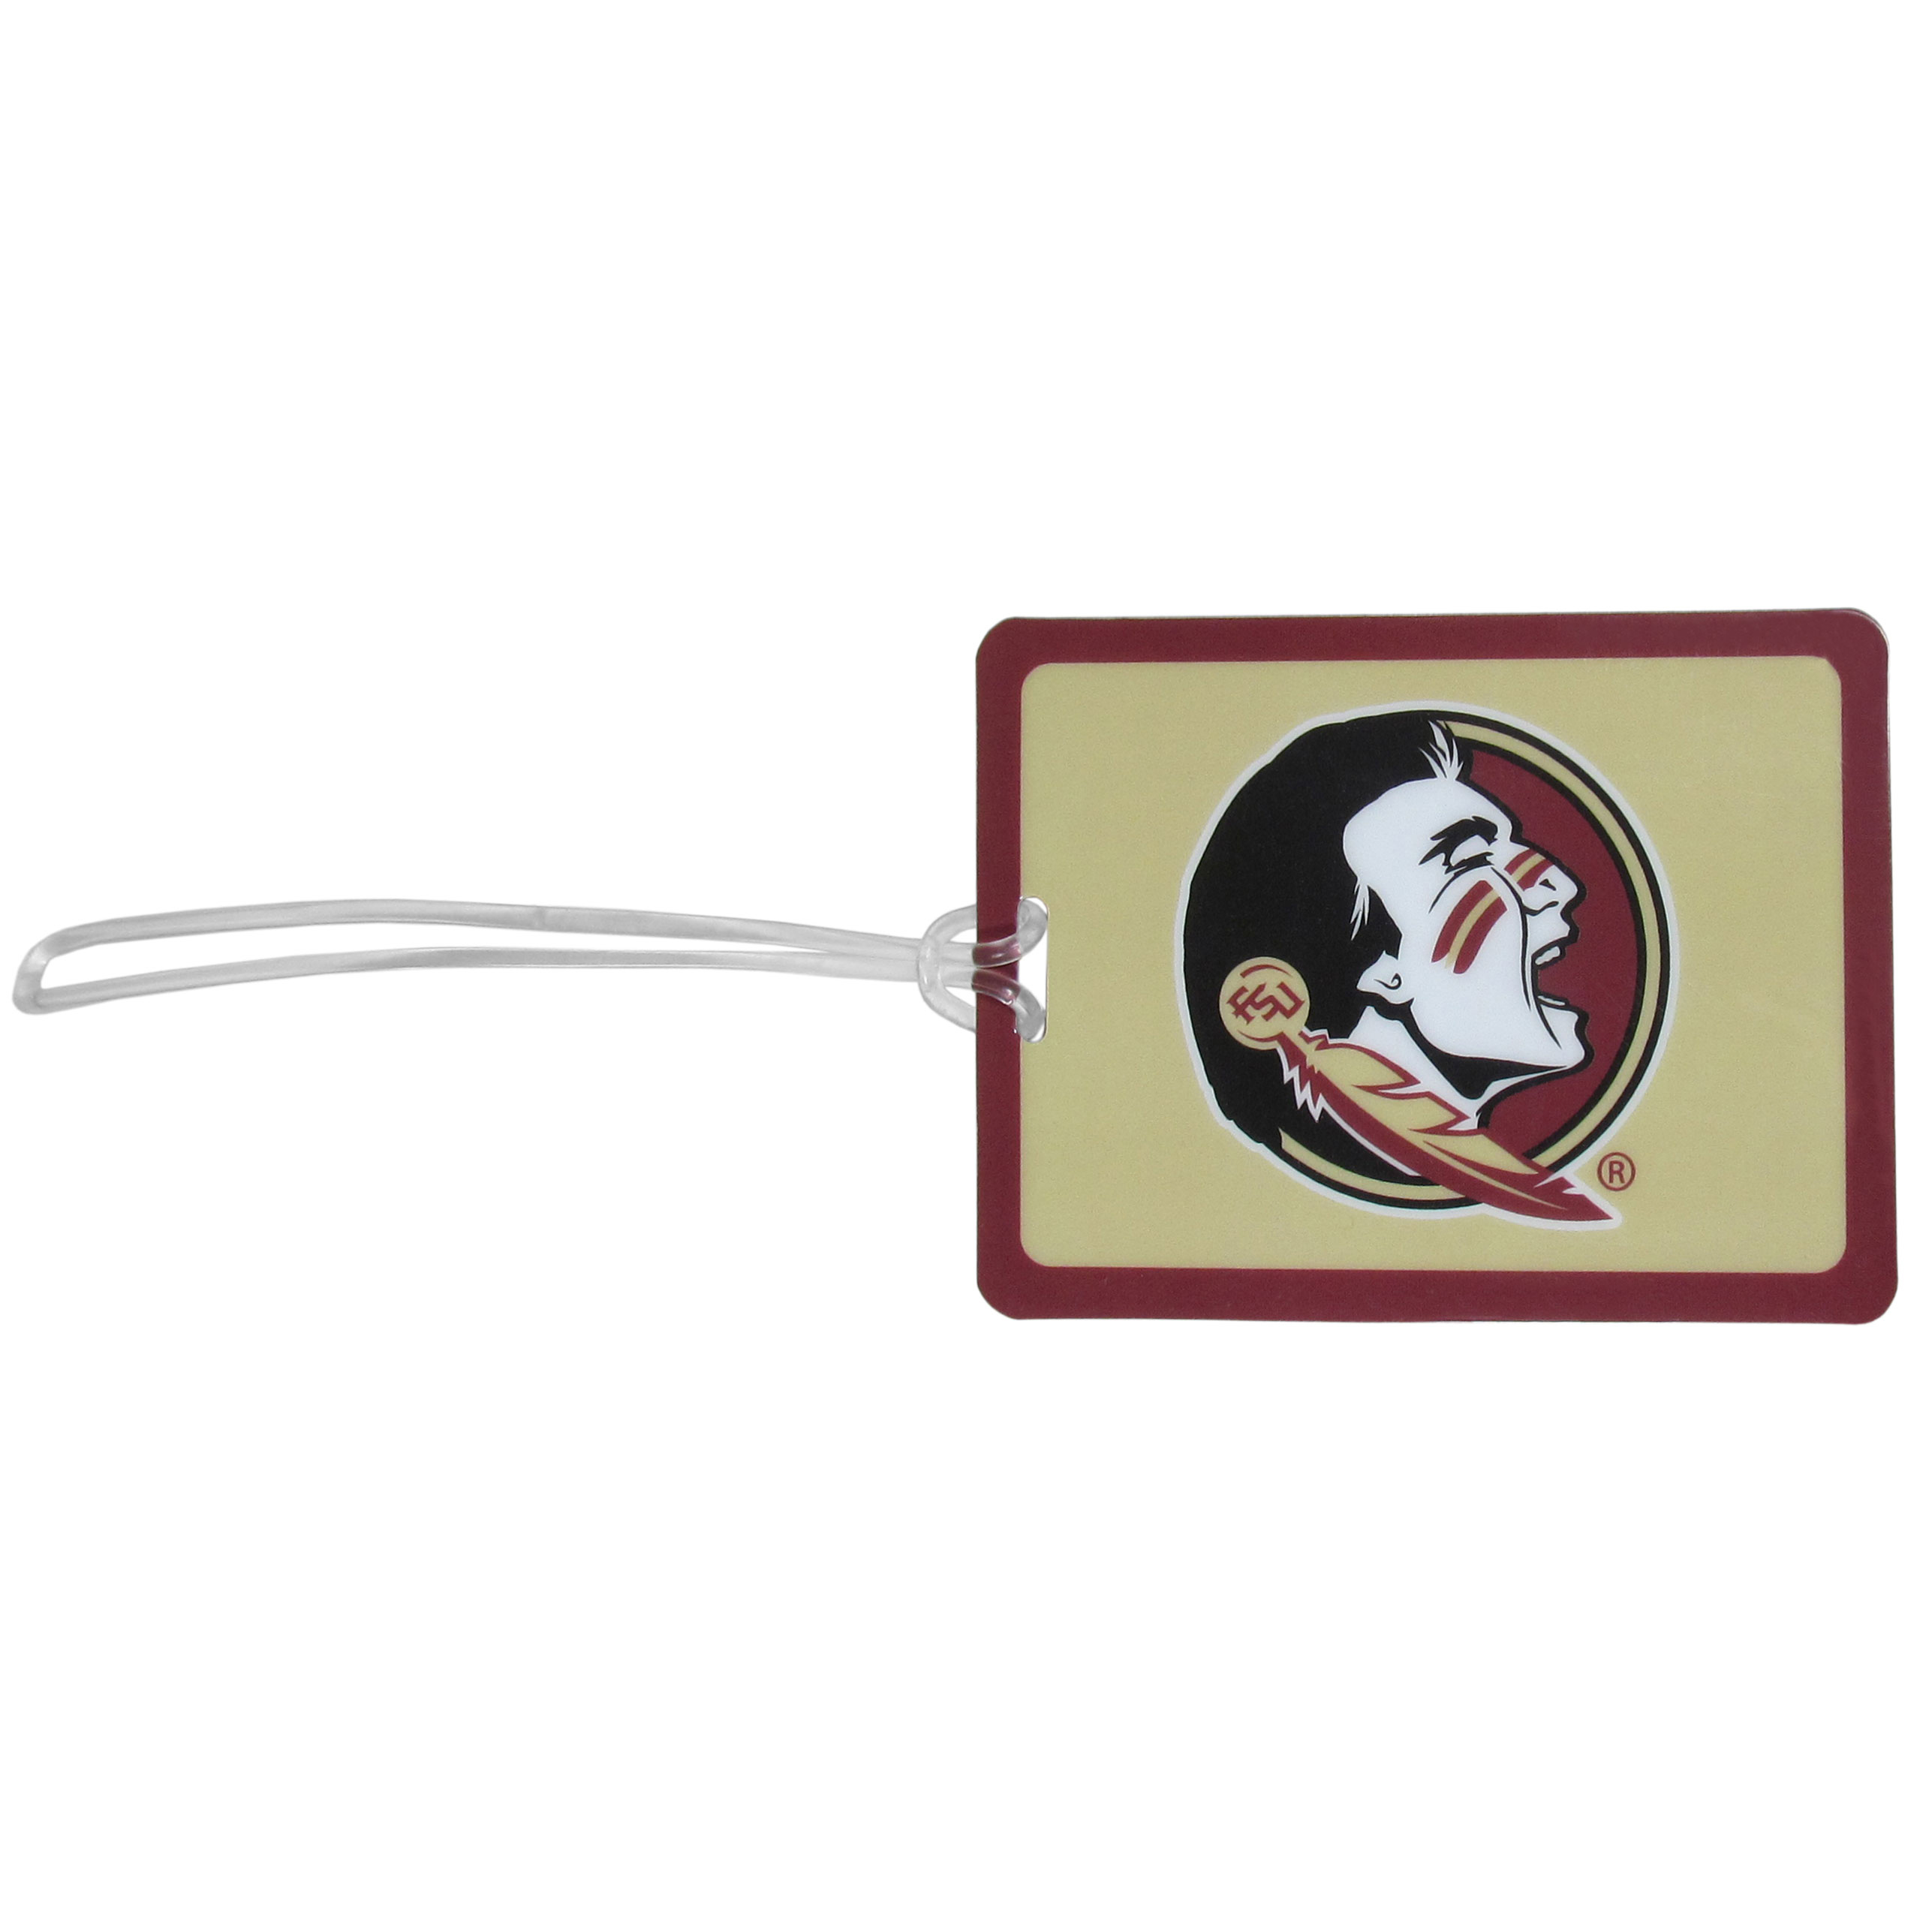 Florida St. Seminoles Vinyl Luggage Tag - Tired of trying to spot your suitcase or bag in a sea of luggage? Try our large and colorful Florida St. Seminoles luggage tag set. The tag is 4x3 inches and has a 5 inch cord to attach it easily to your bags, backpacks or luggage. The front of the tag features the team logo in a bright, team colored background and you can write you name, address and phone number on the back of the tag.